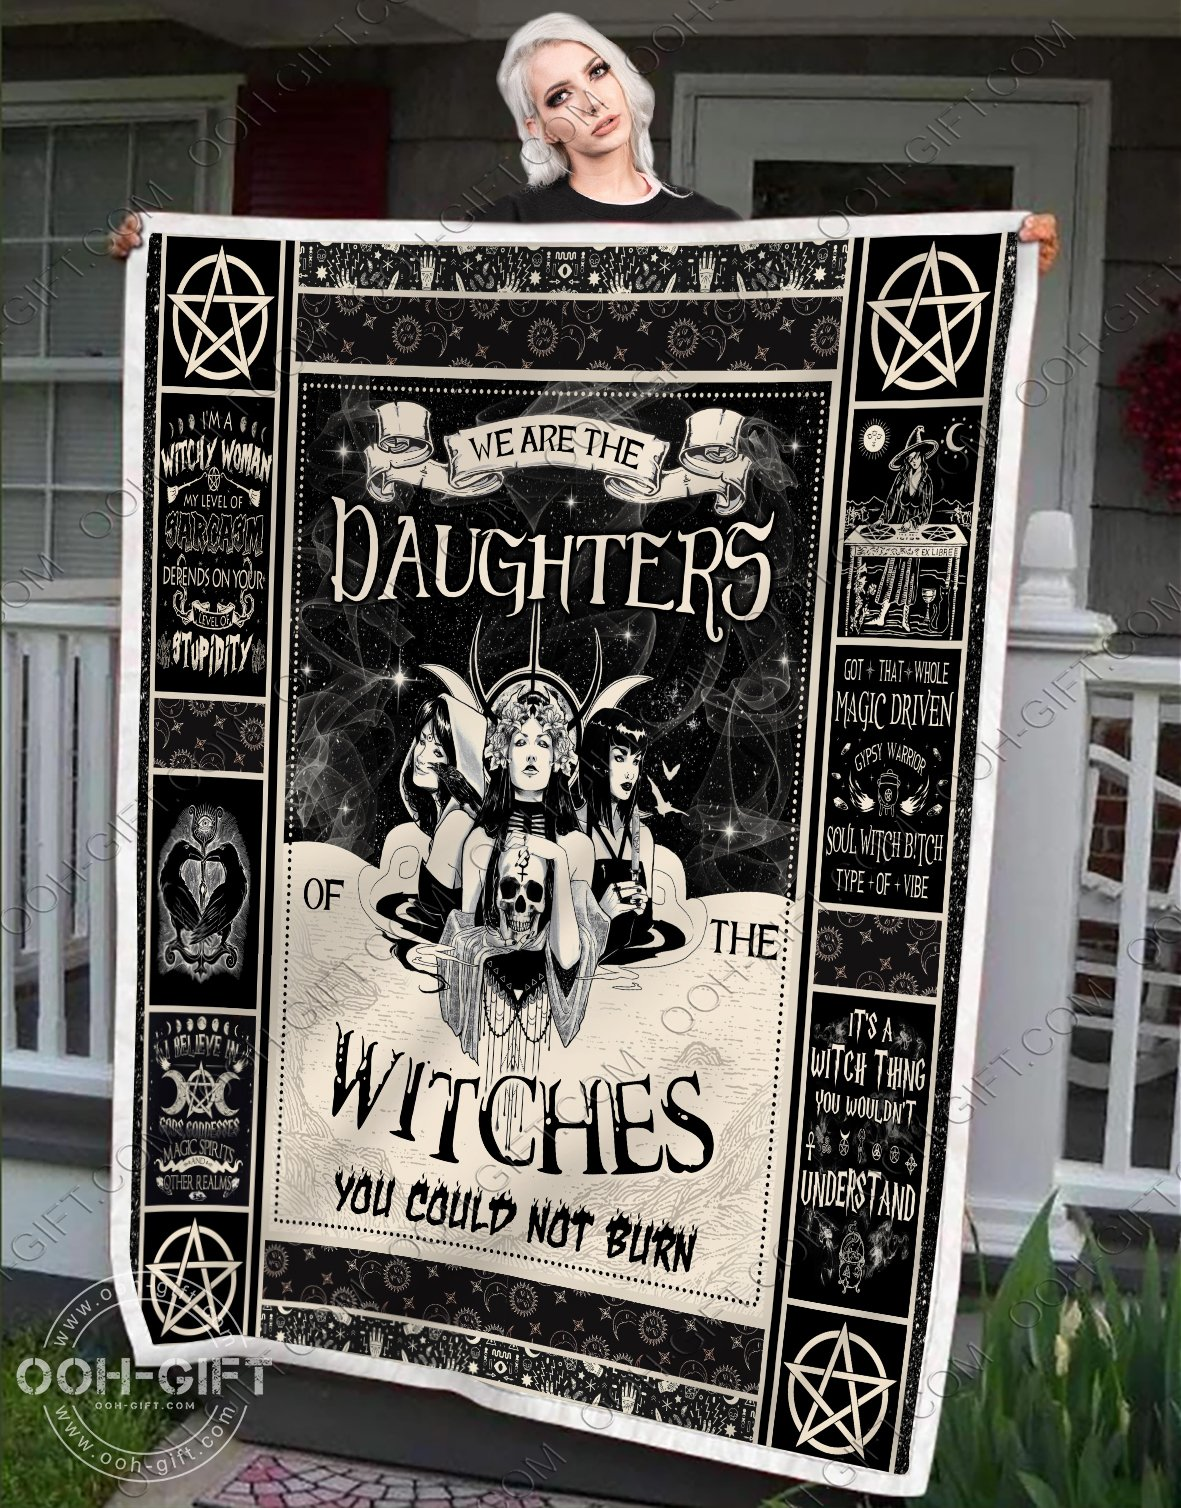 We are the daughters of the witches you could not burn blanket 1